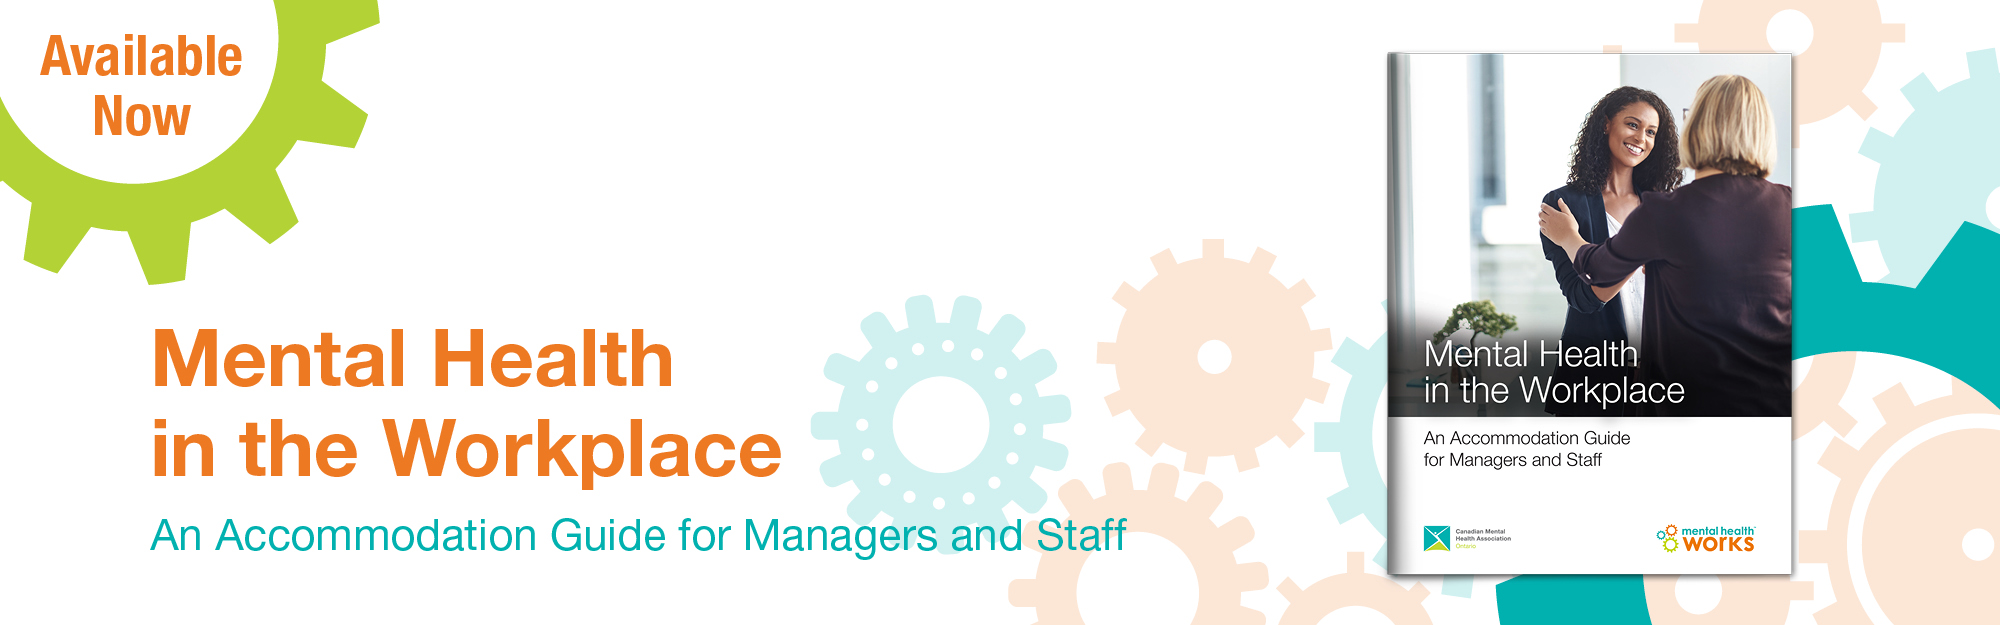 New, free guide to help Ontario businesses address mental health in the workplace